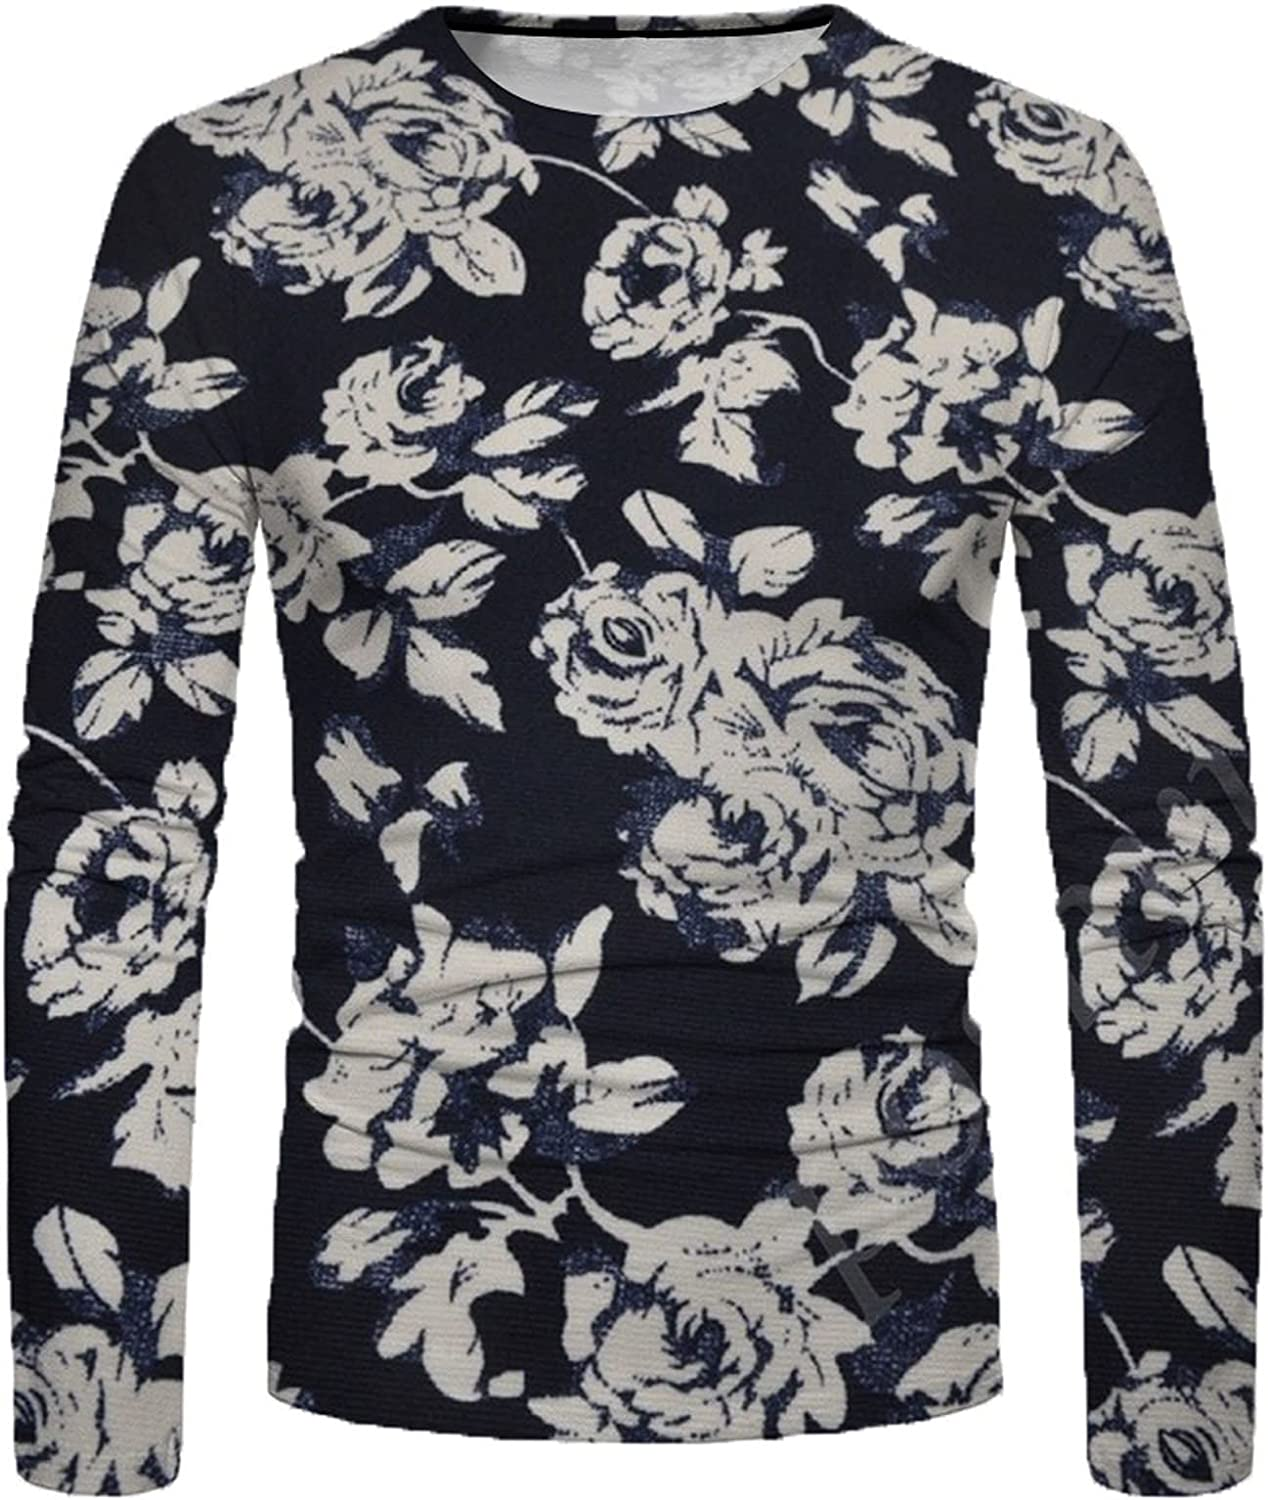 Huangse Fashion Long Sleeve for Men Floral Printed Tees Shirt Vintage Blouse Casual Workout Muscle Athletics Sportswear